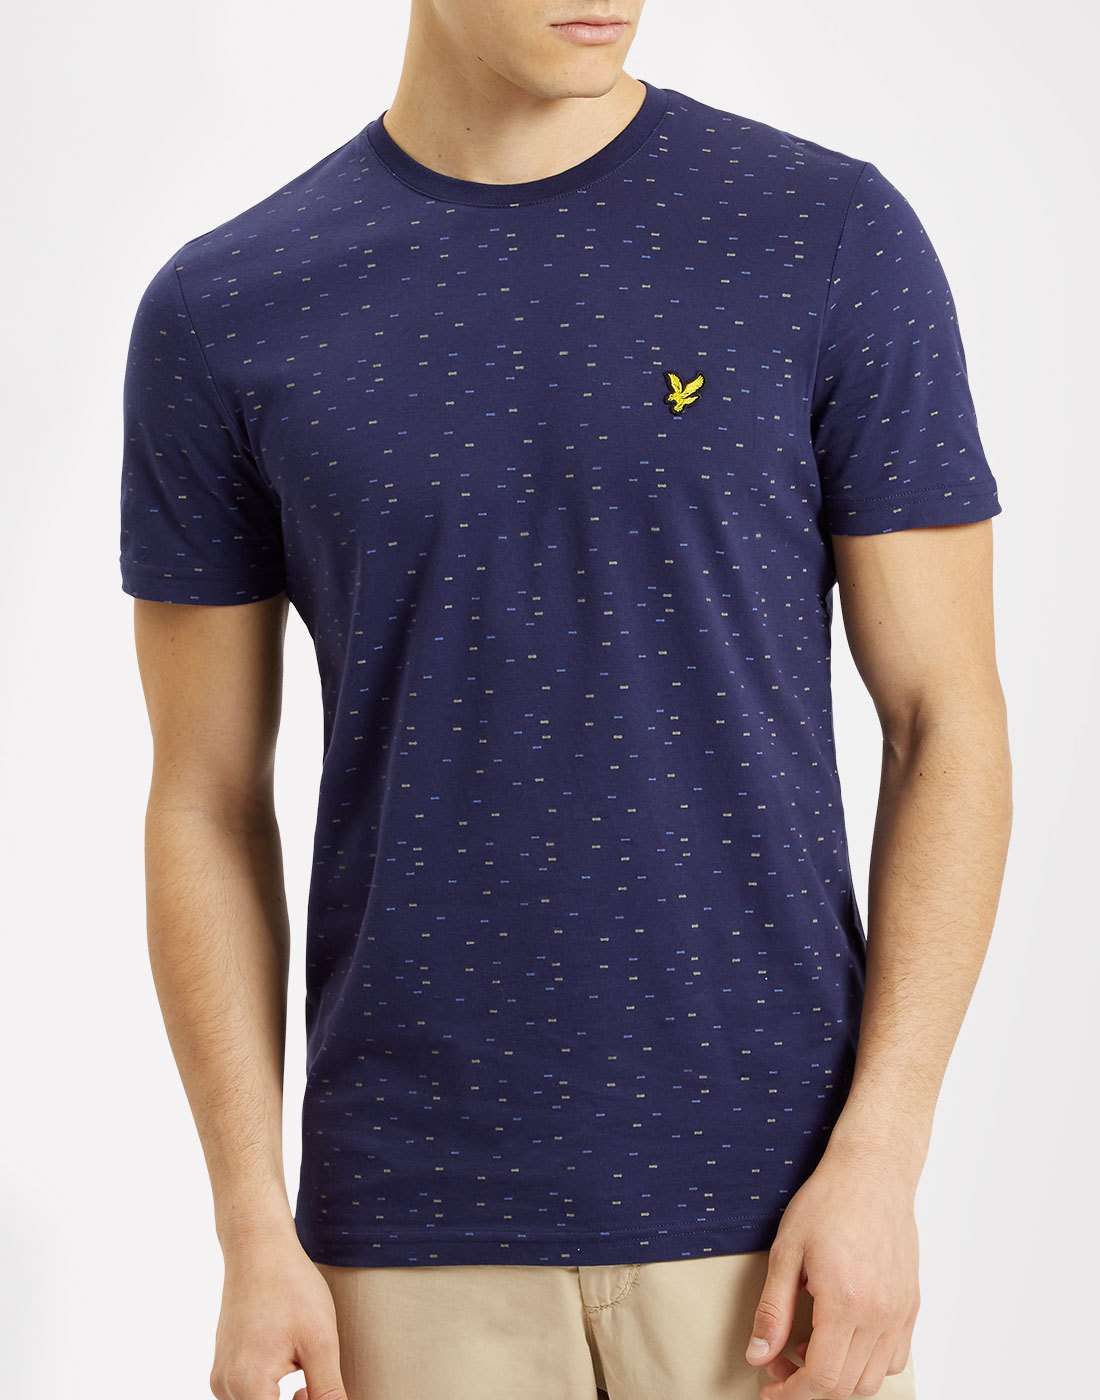 LYLE AND SCOTT Men's Retro Indie Fil Coupe Tee (N)